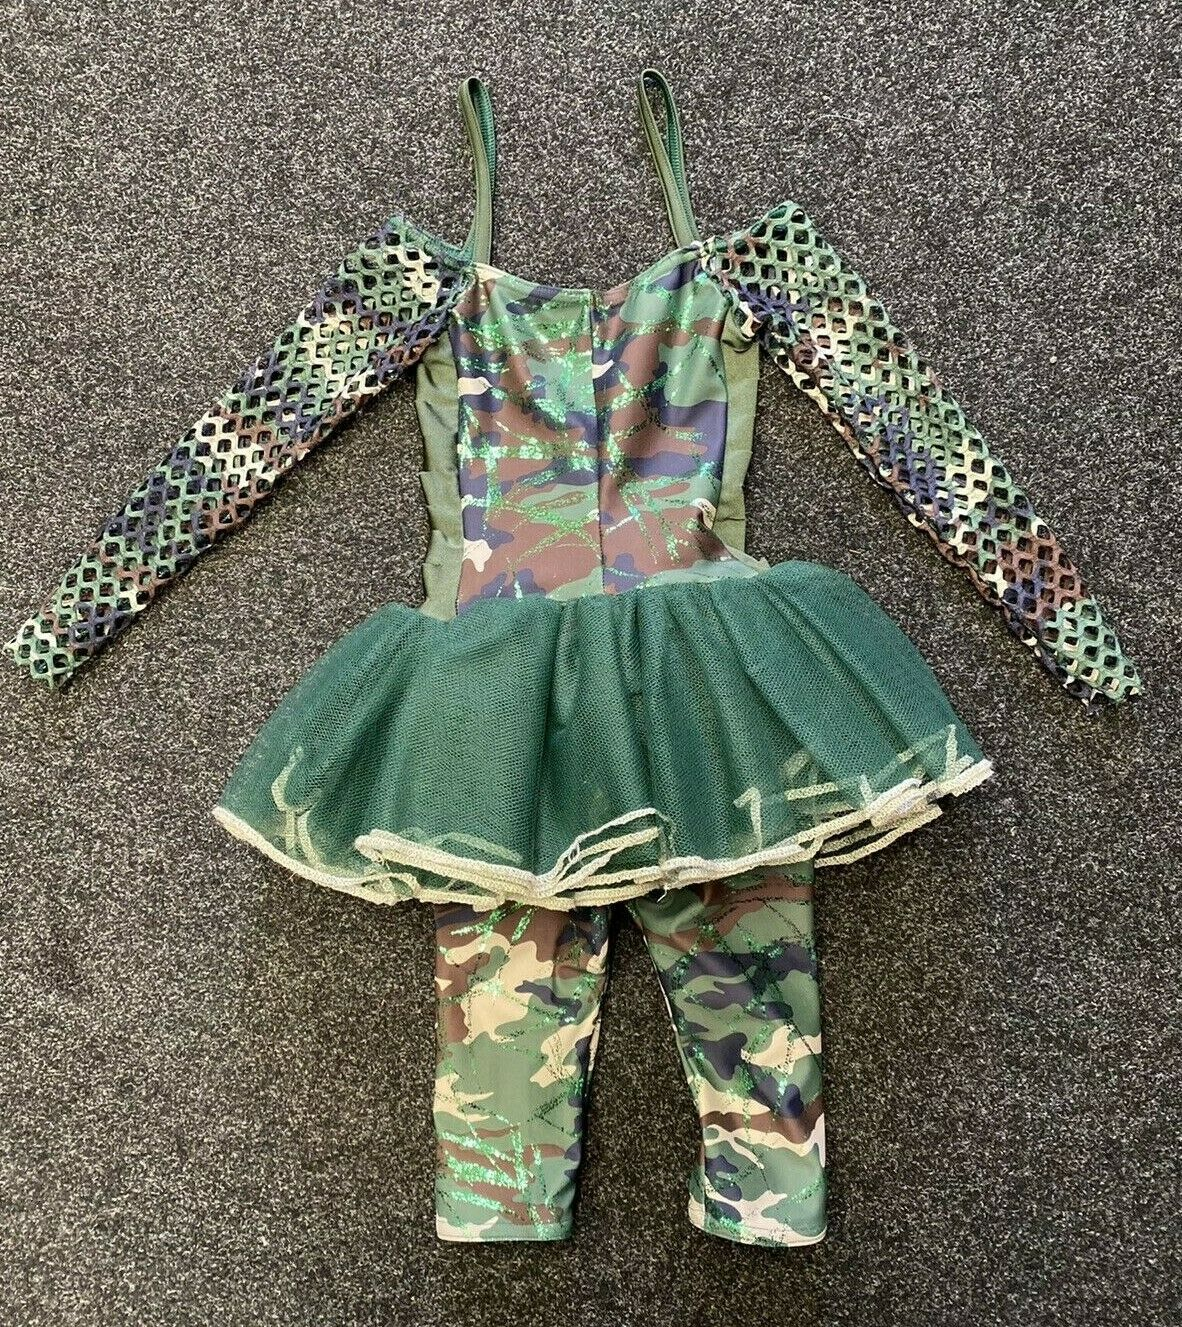 Camouflage BILLIE DANCE UNITARD with Green Tutu Skirt - Age 2 (Size 00) So Cute